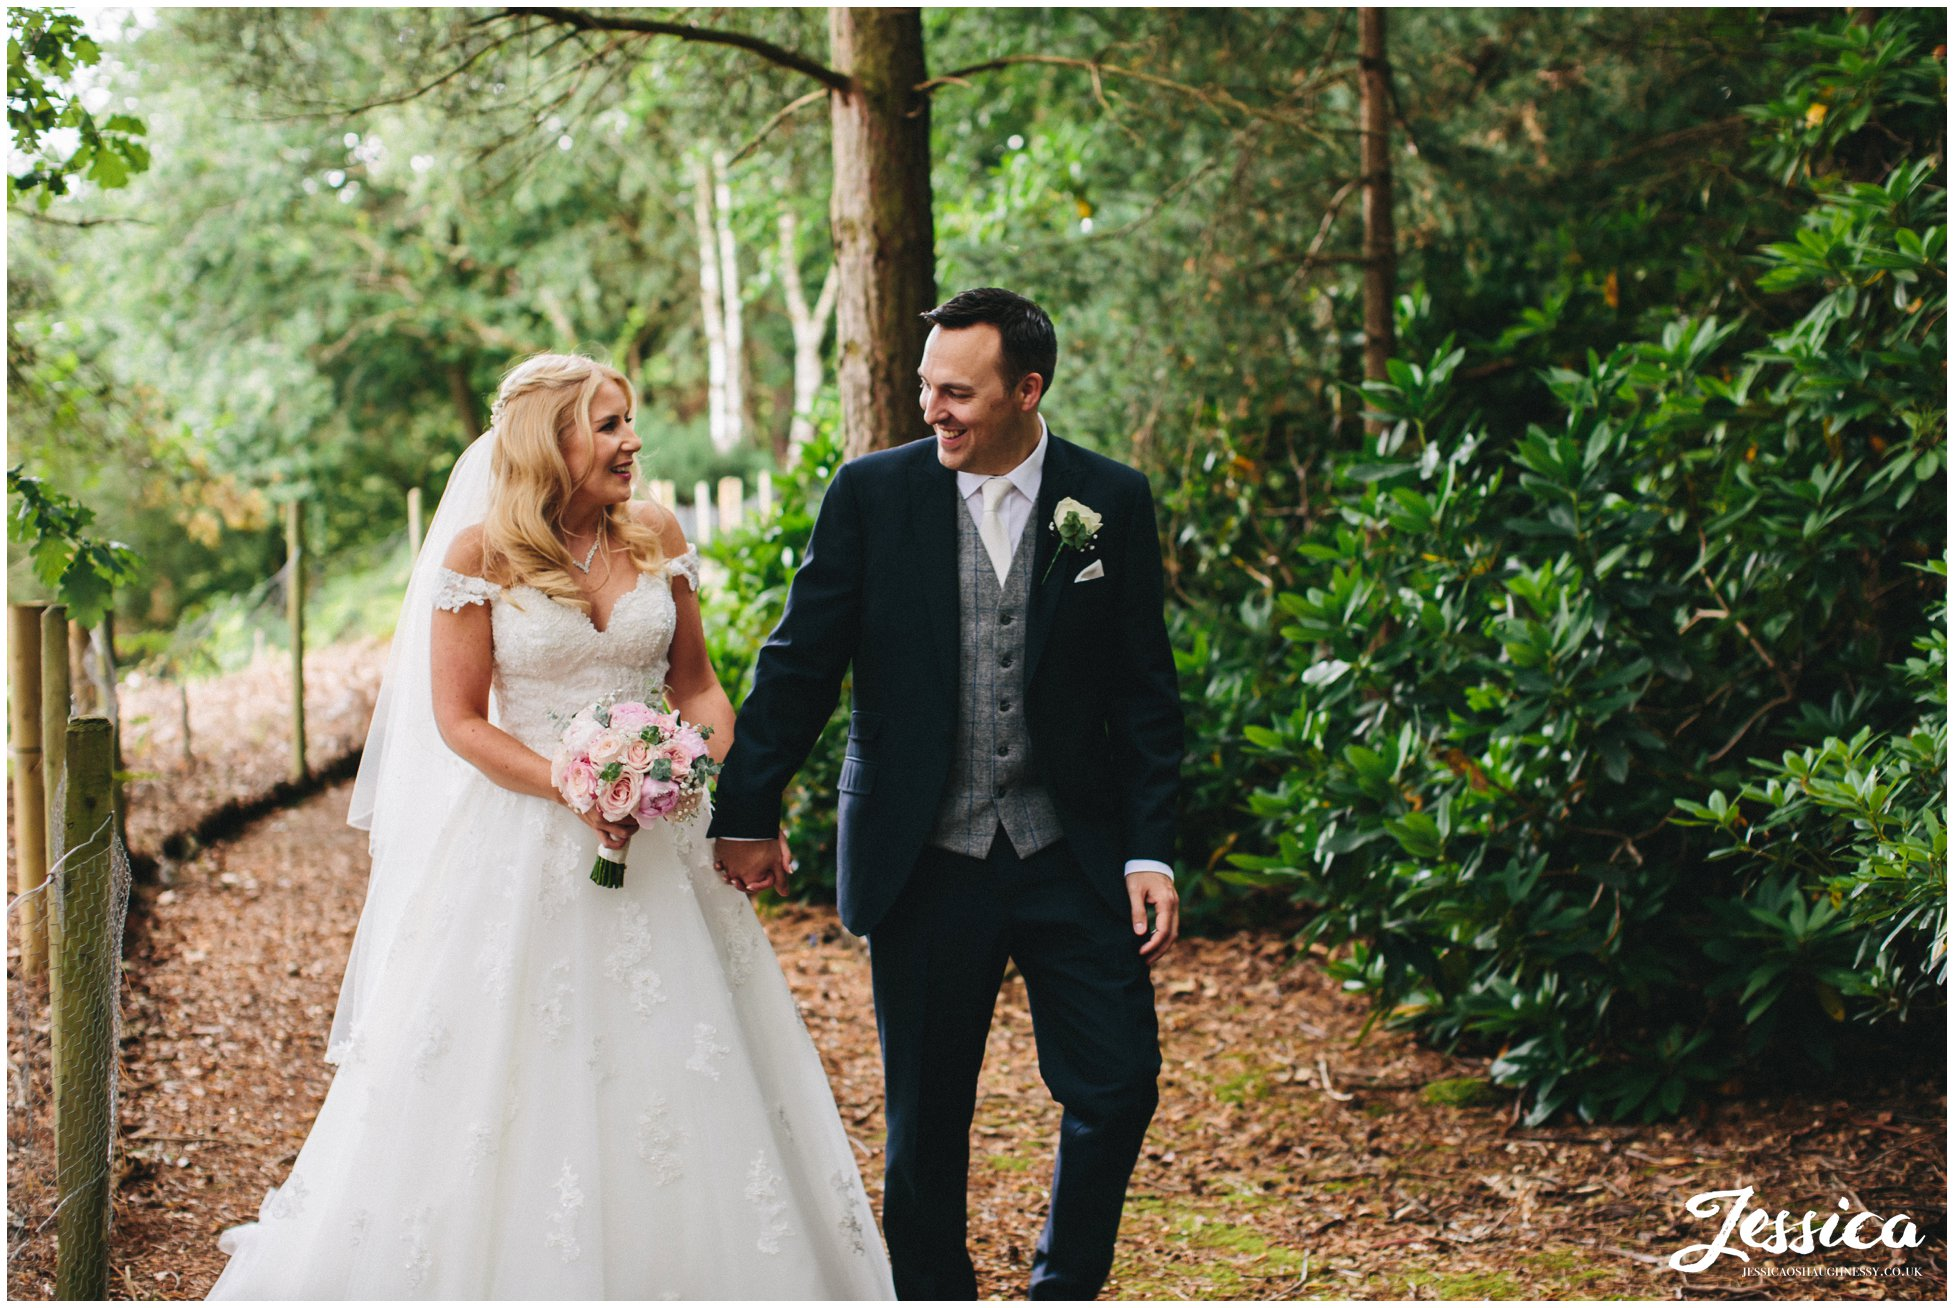 bride & groom walking through trees at their wedding in cheshire